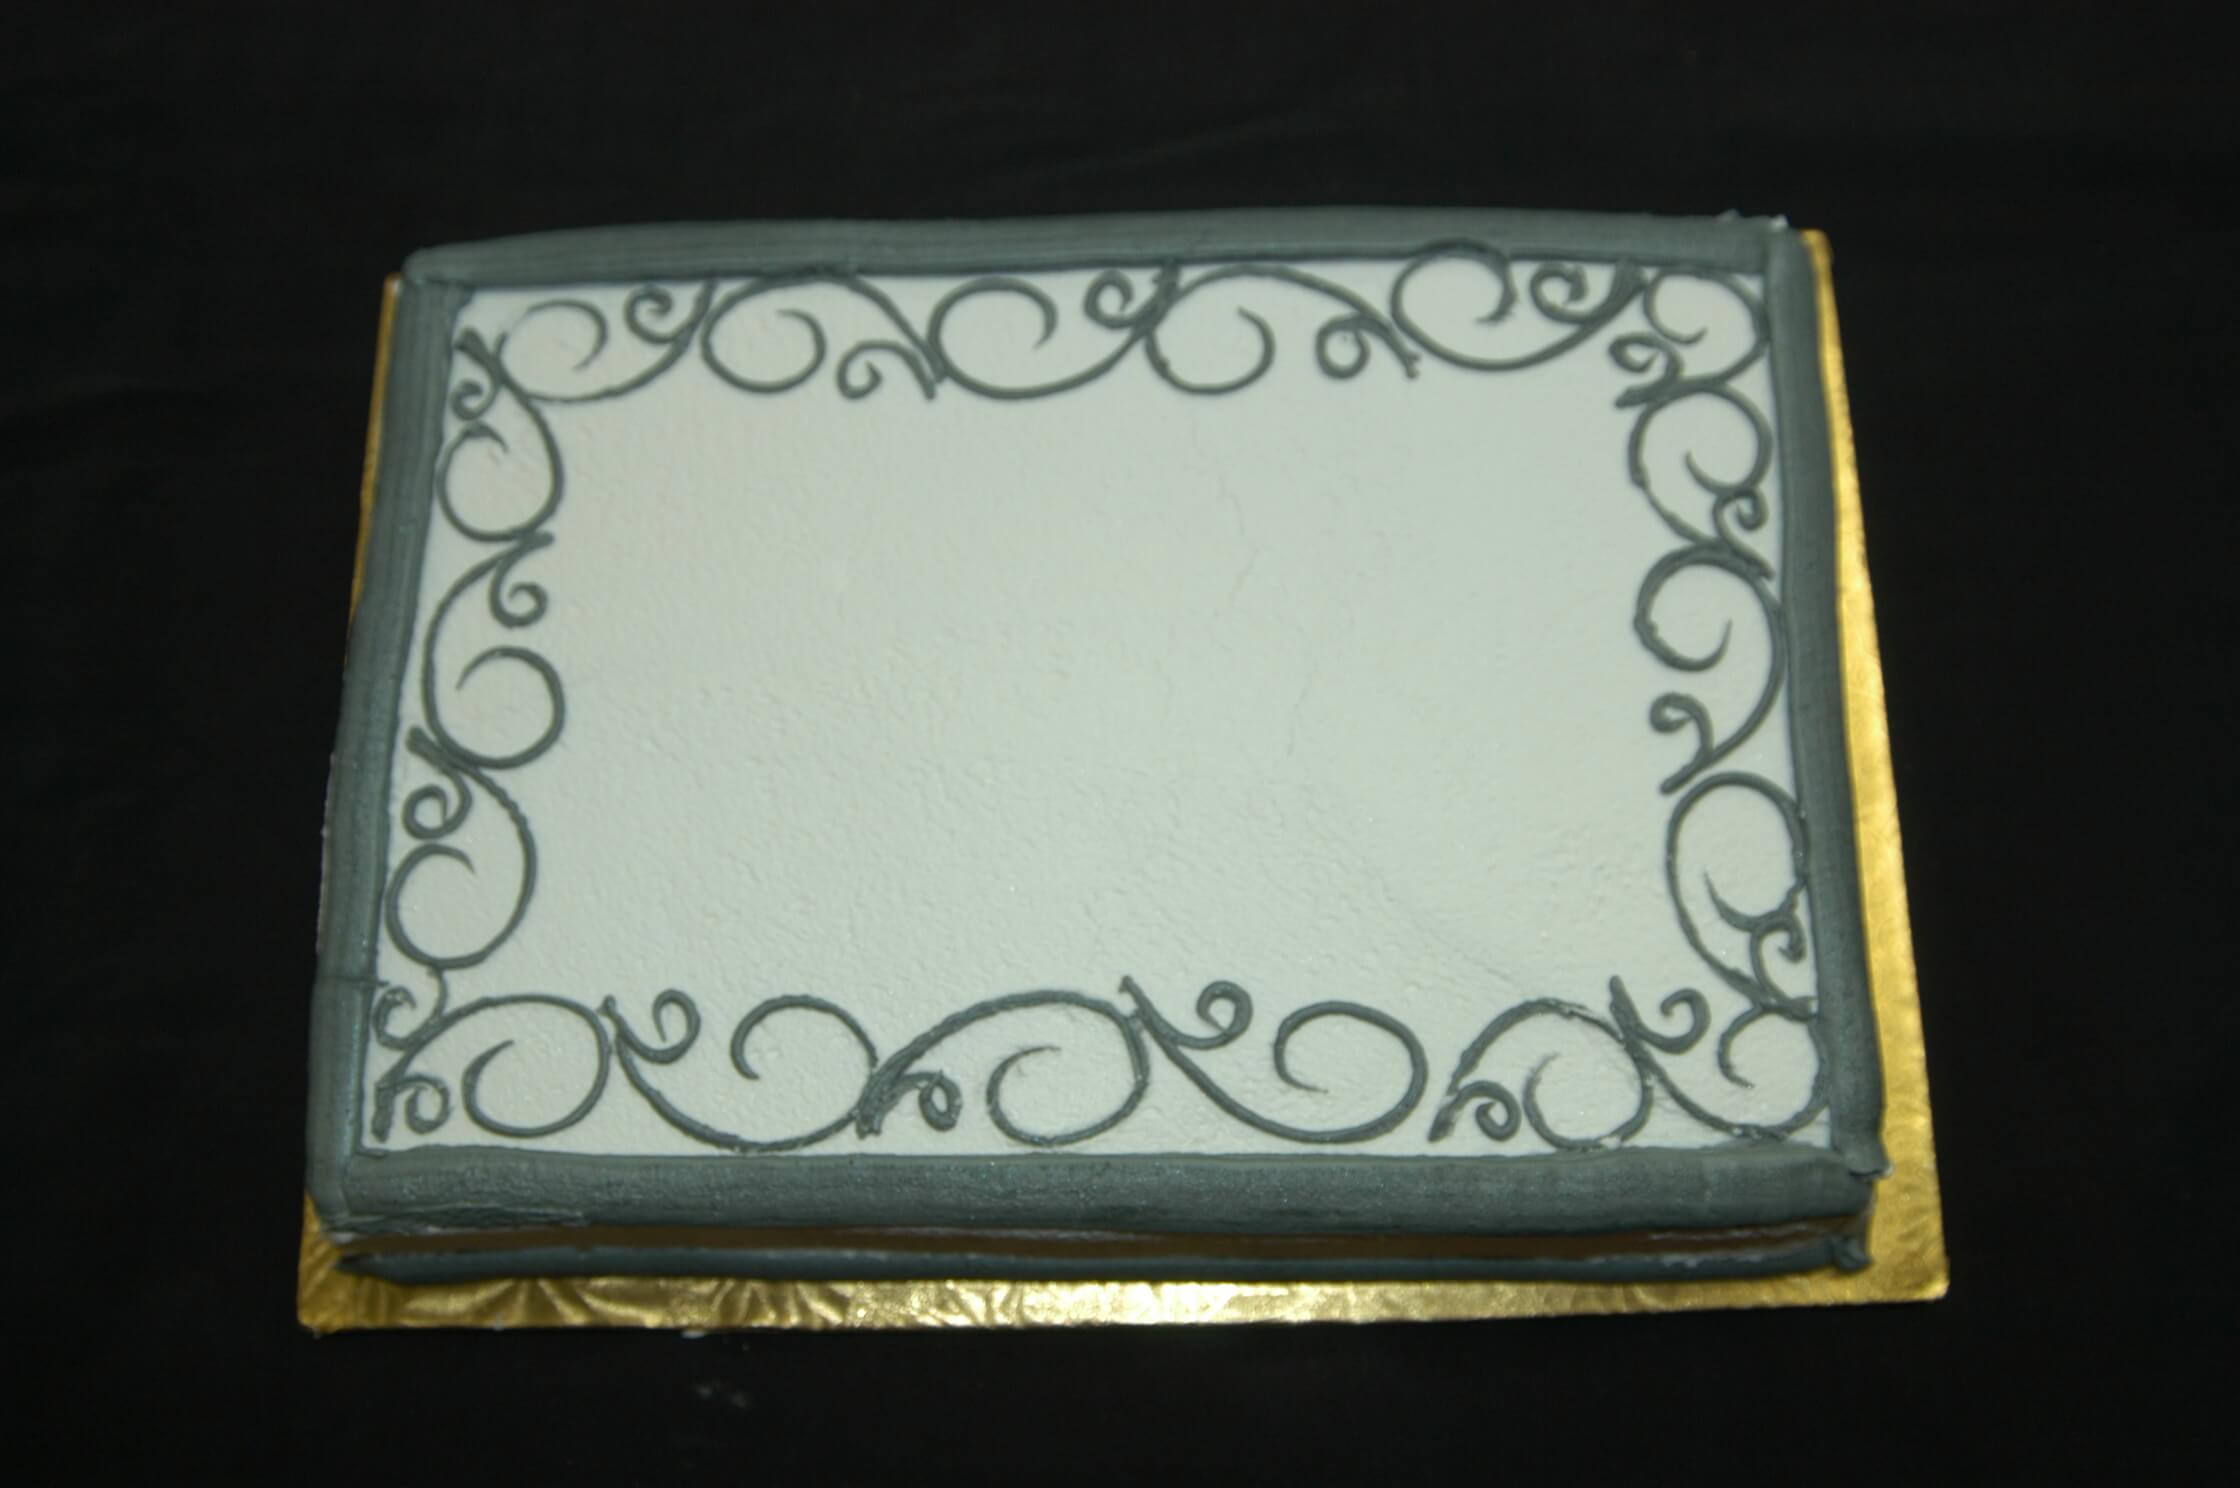 McArthur's Bakery Custom Cake with Simple Grey Scrolling